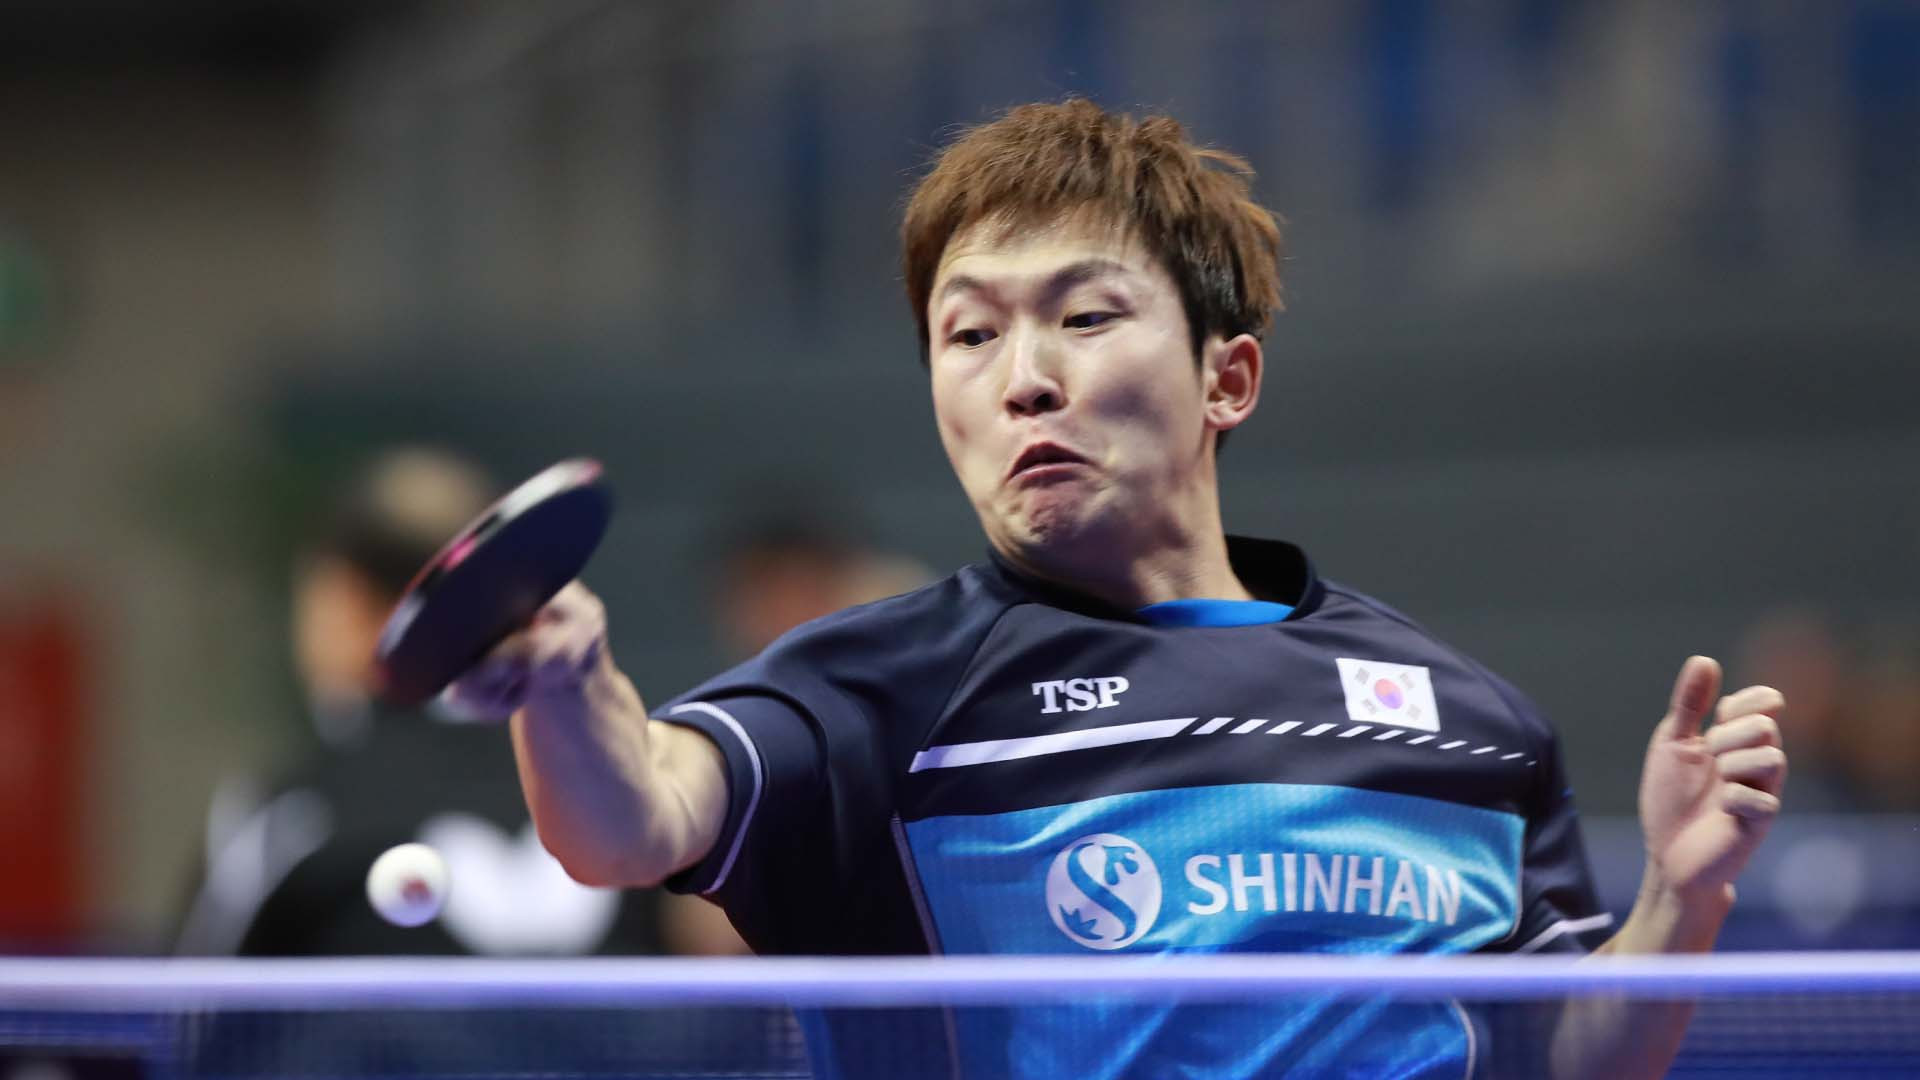 Highly ranked home player Jeong Sangeun loses in qualifying at ITTF Korea Open